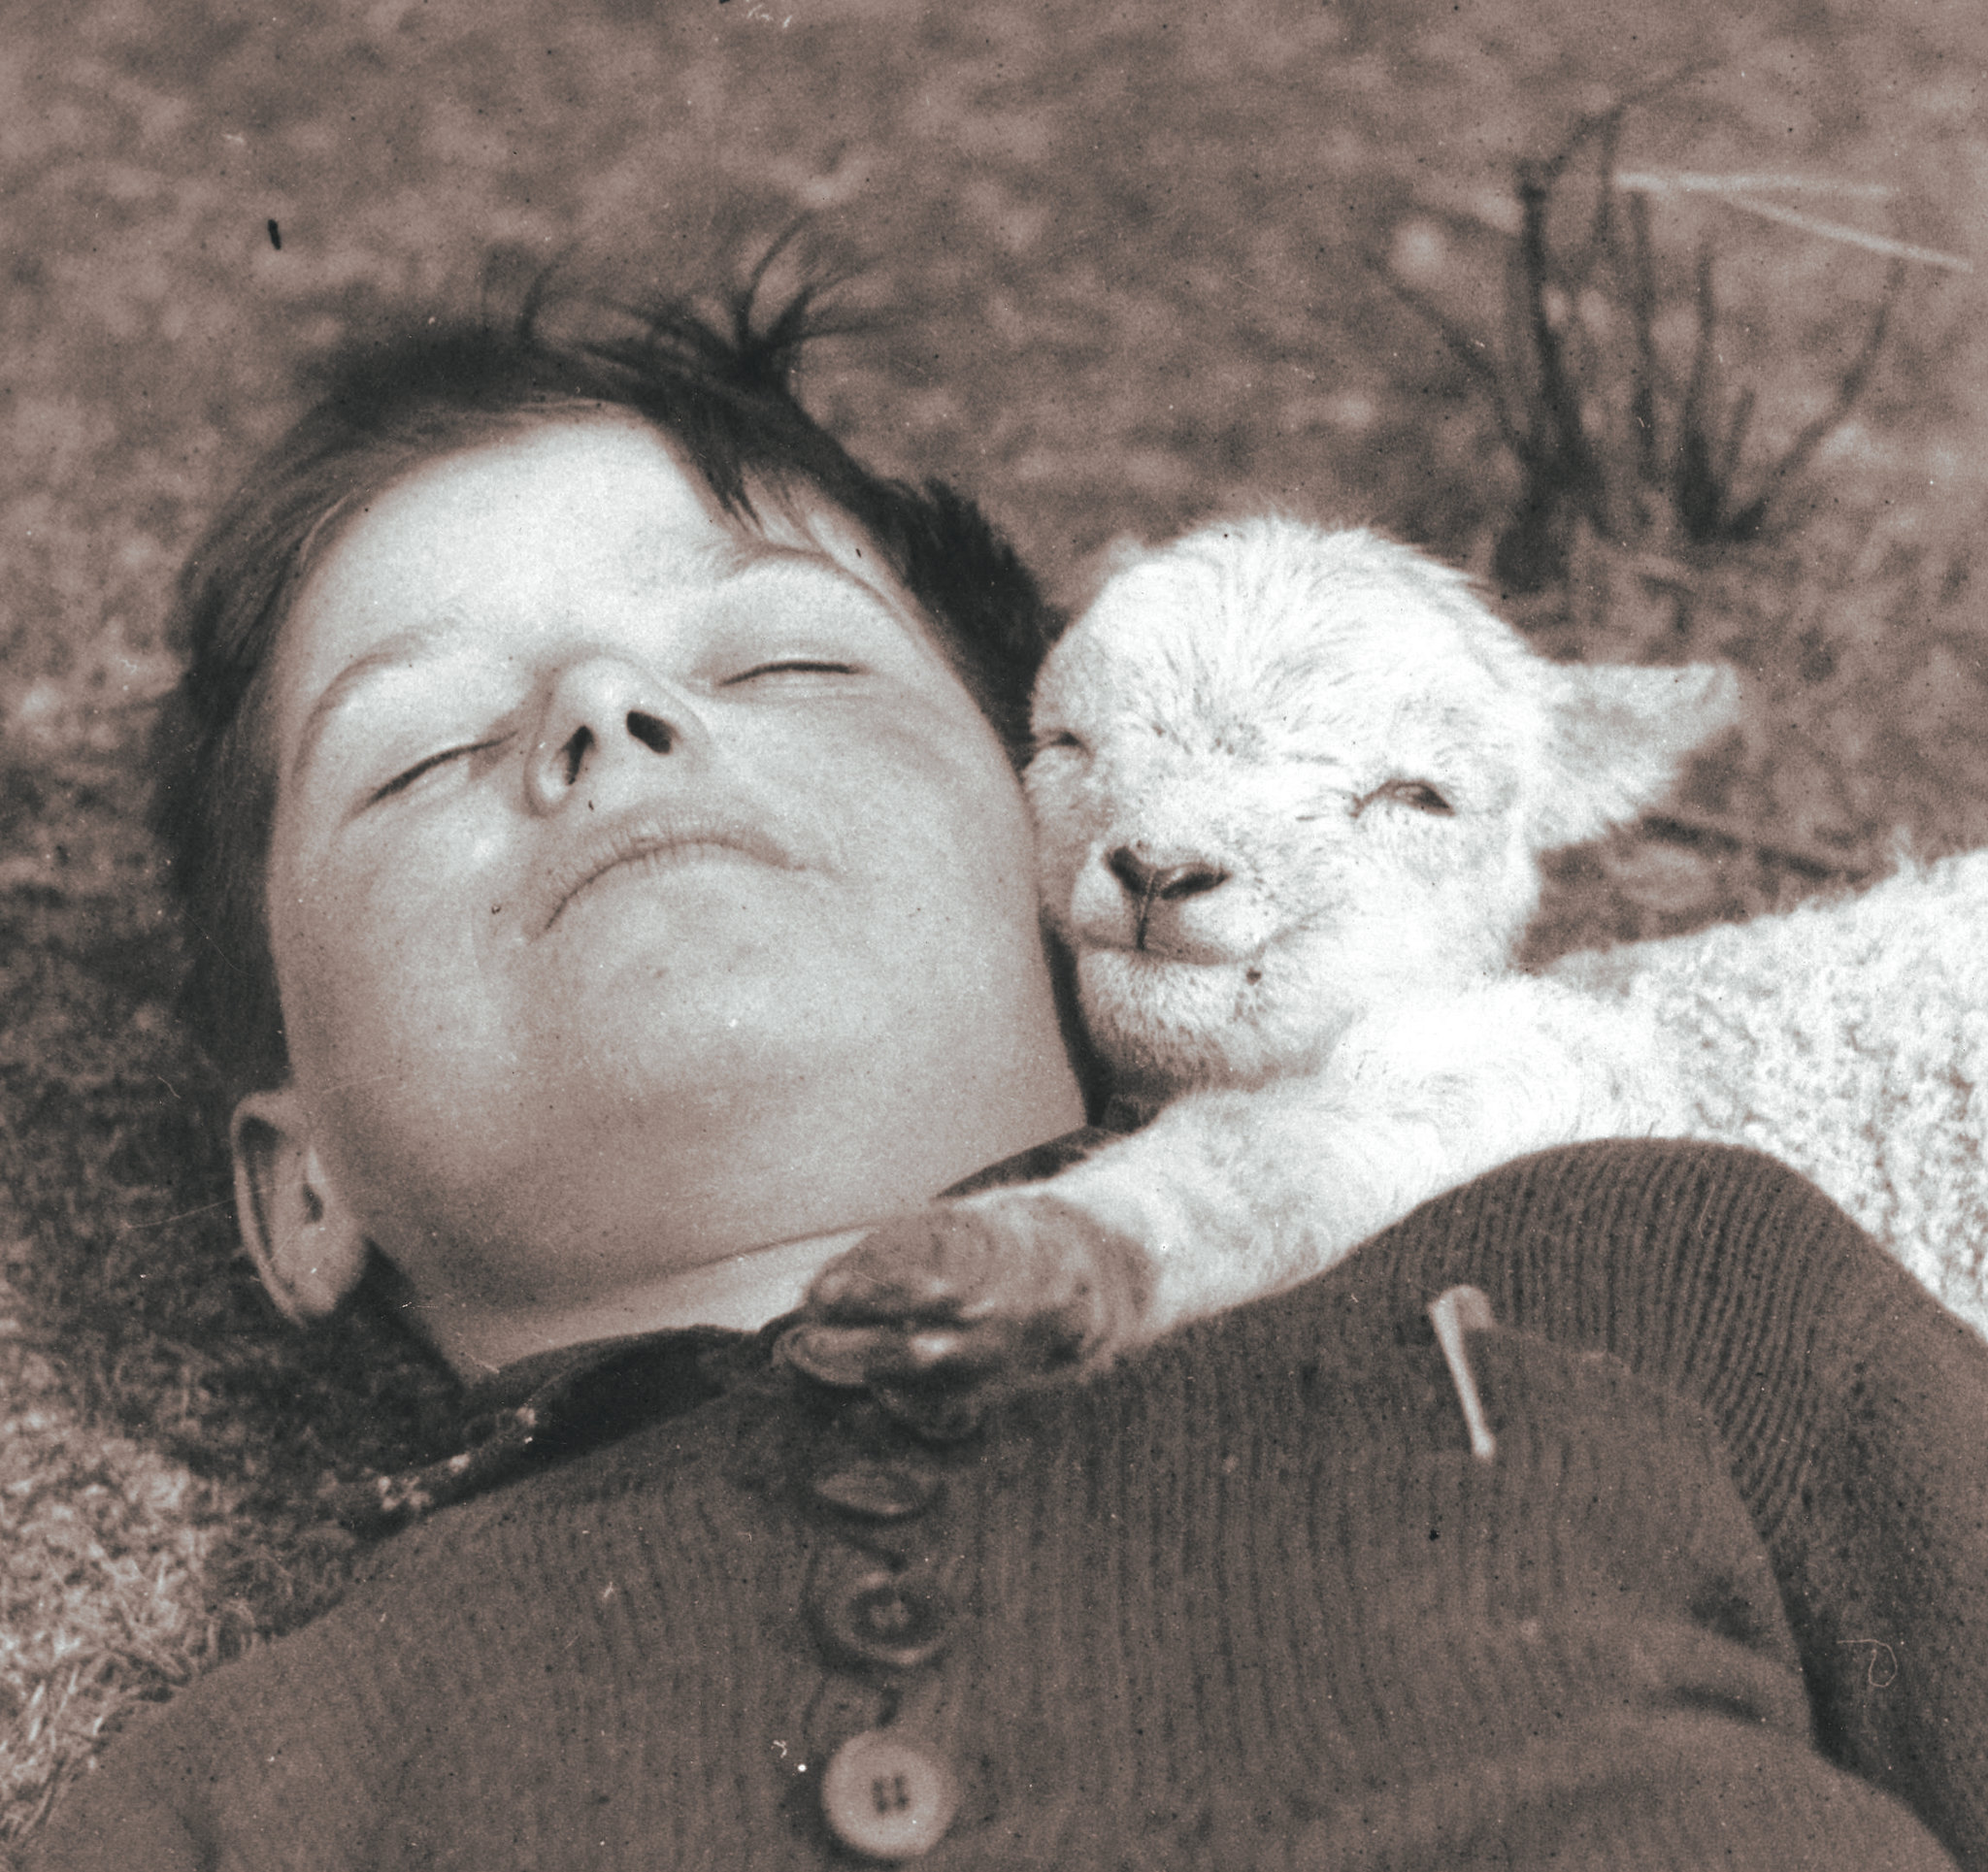 Boy Lamb Ogmore Vale 16th of March 1940+.jpg